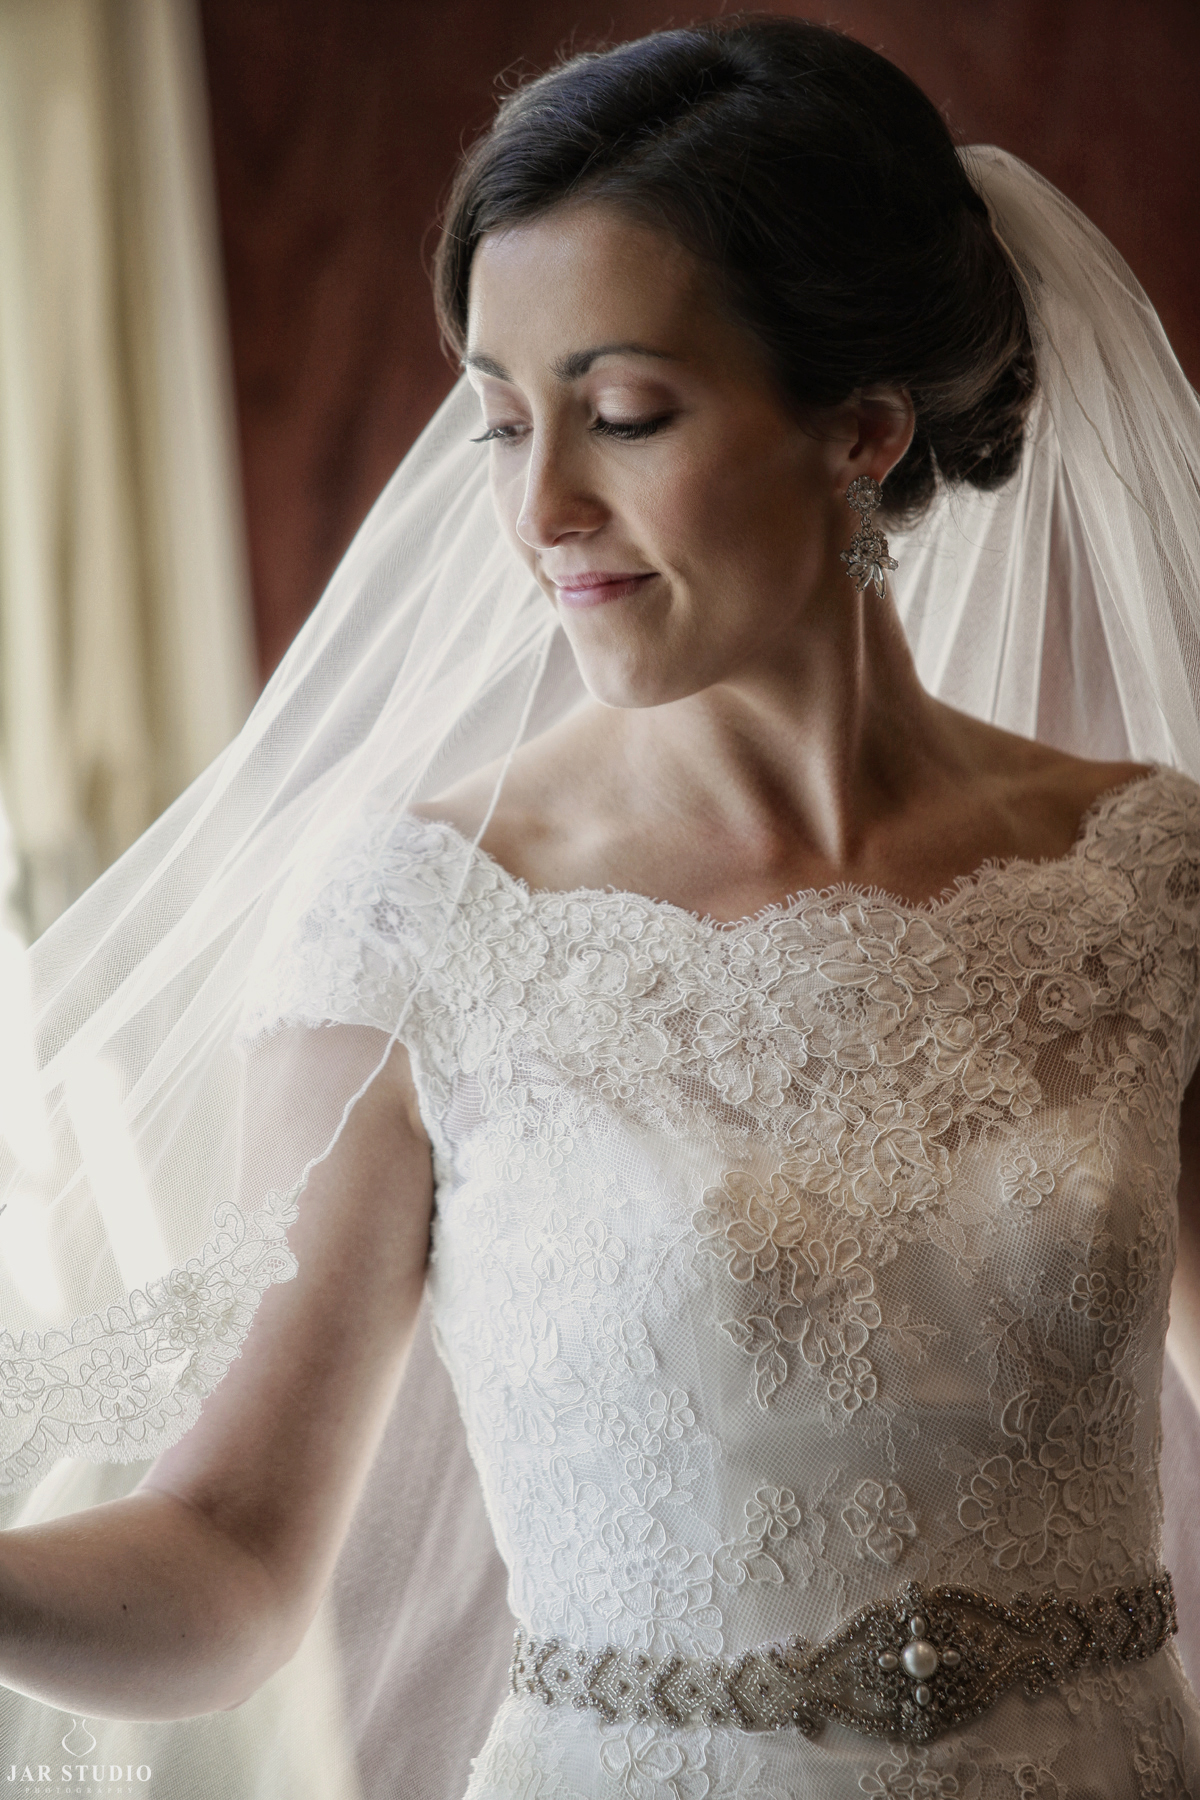 15-beautiful-veil-dress-details-unique-orlando-wedding-photographer.JPG